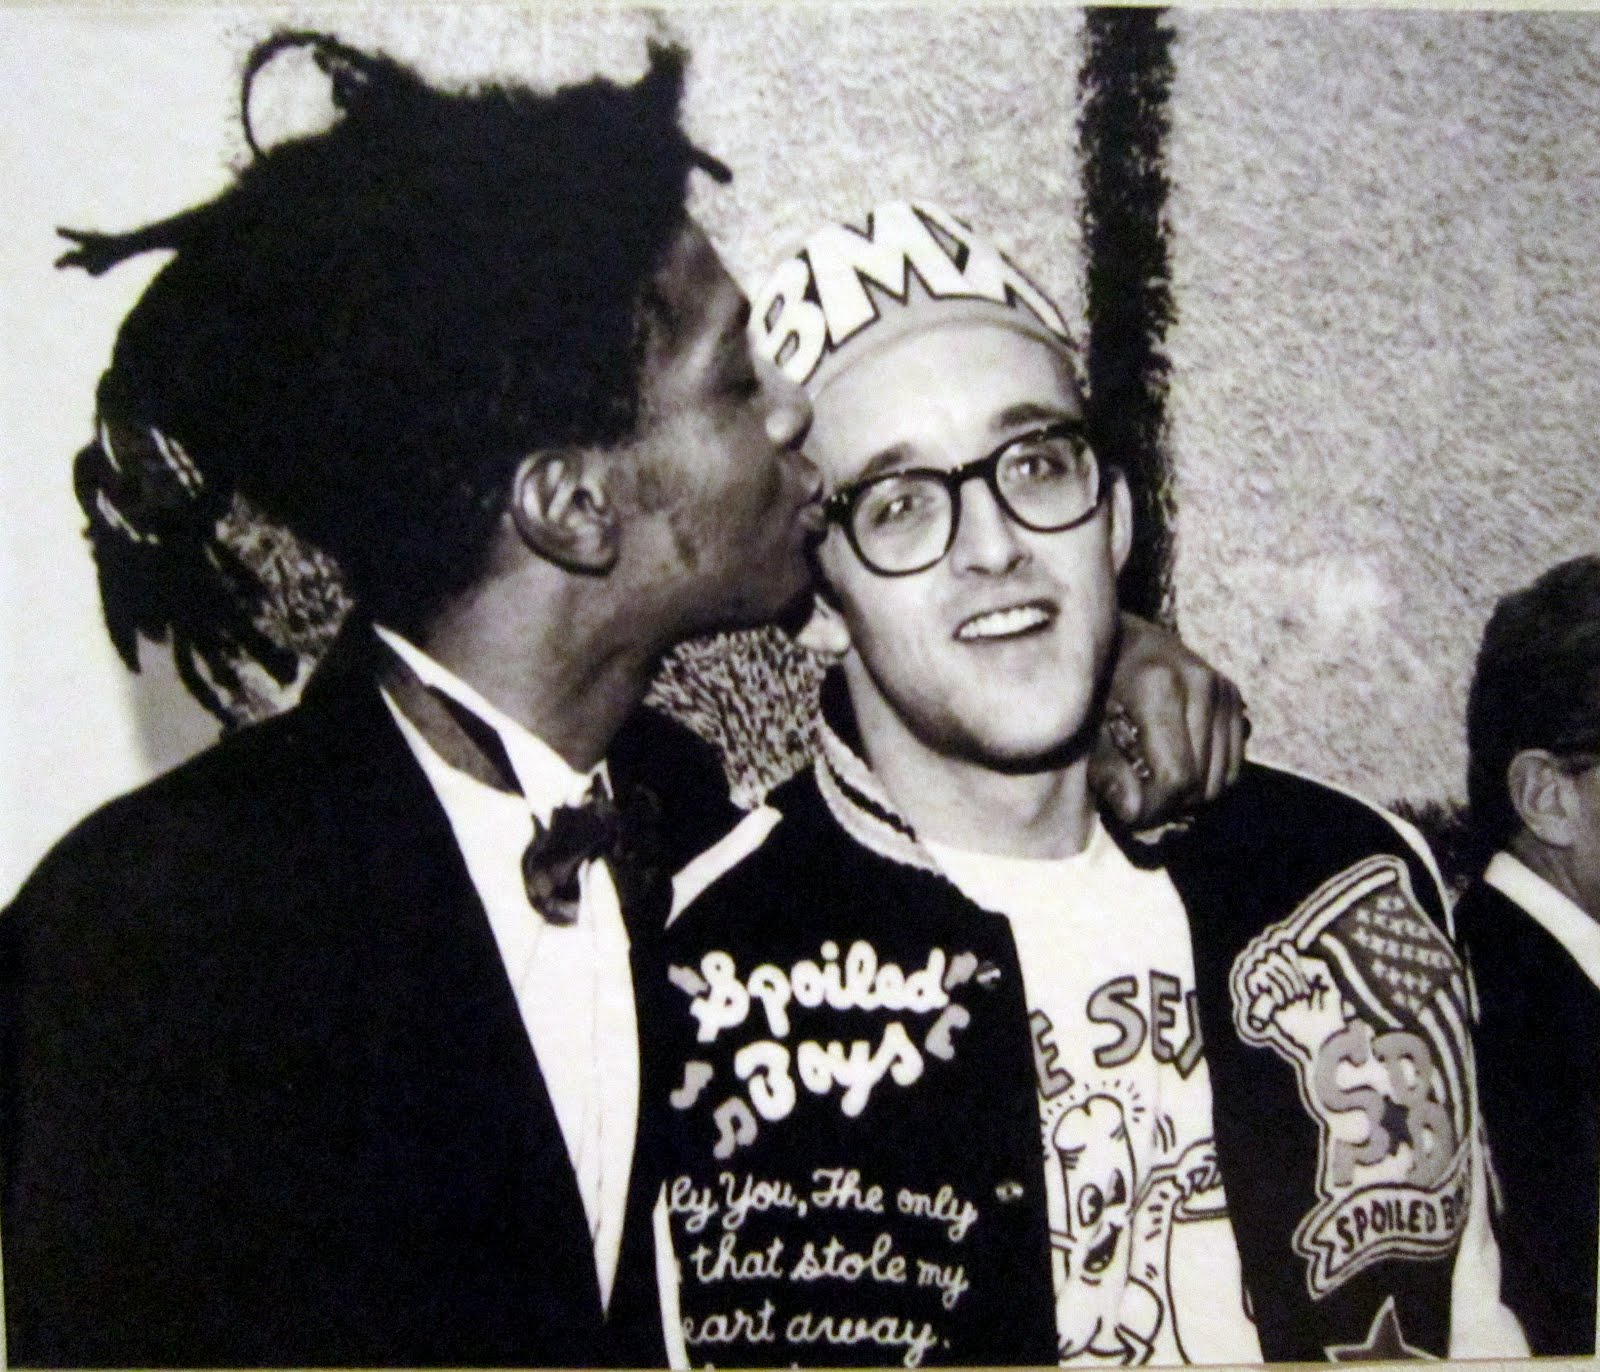 Keith Haring and Jean-Michel Basquiat, 1987